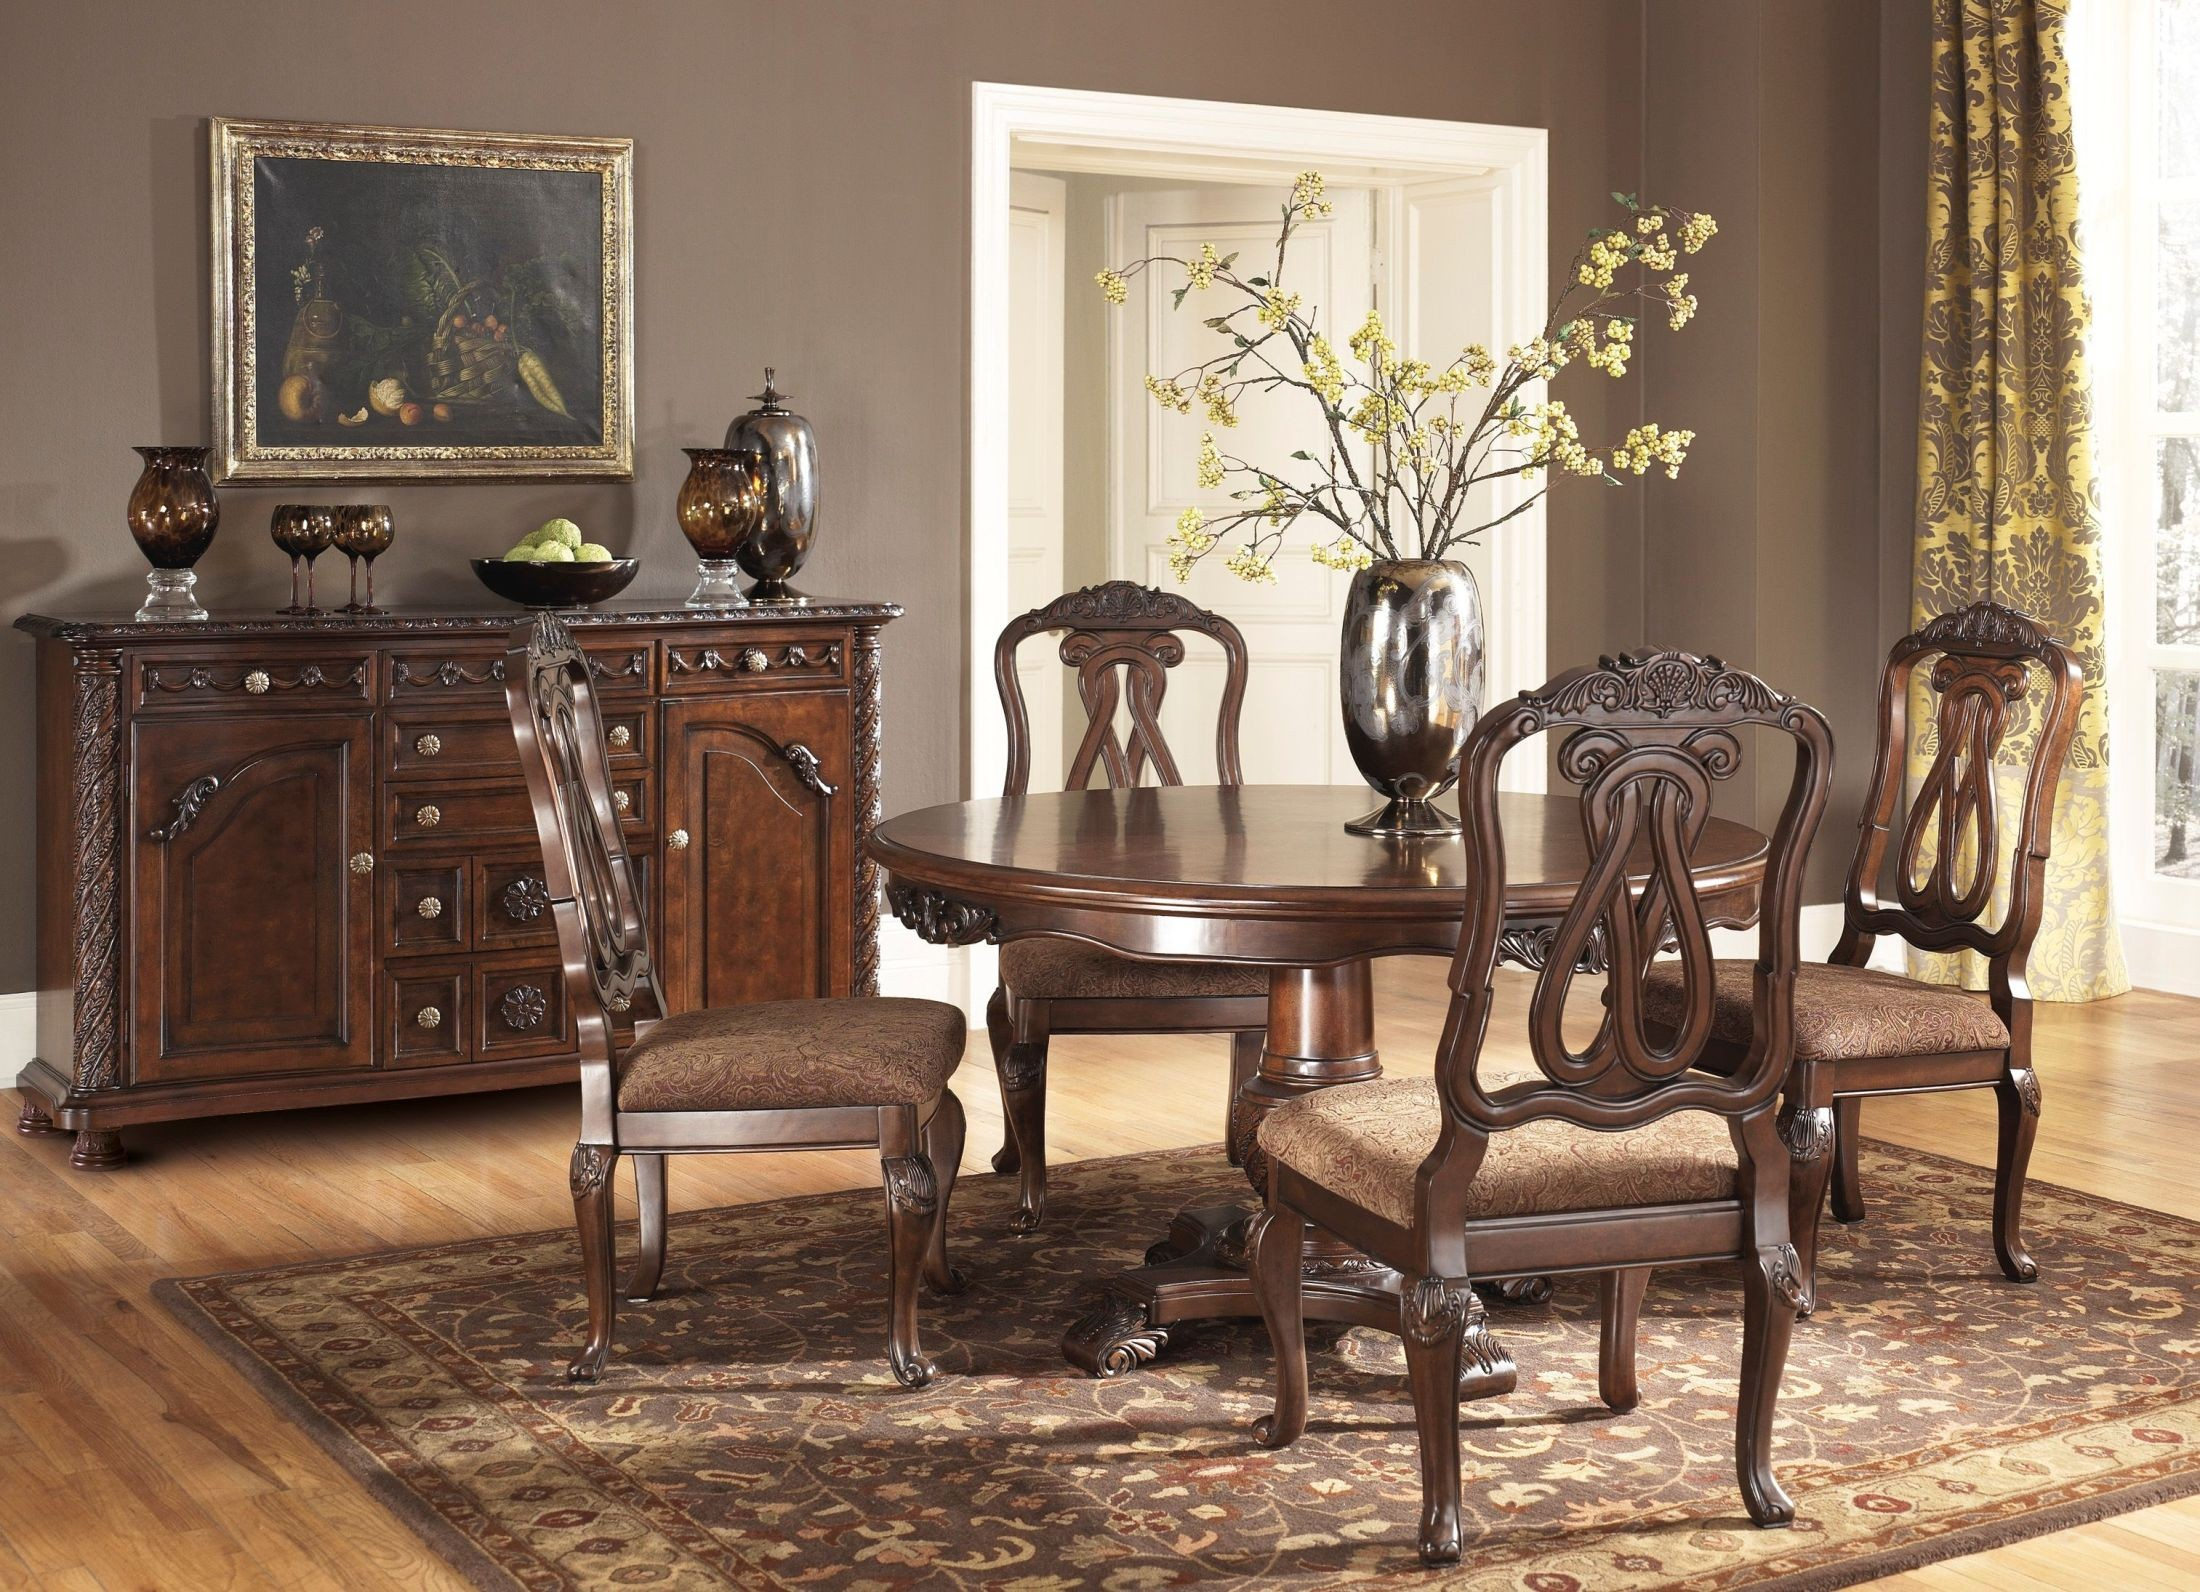 Ashley Furniture Dining Table 4 Chairs Photos